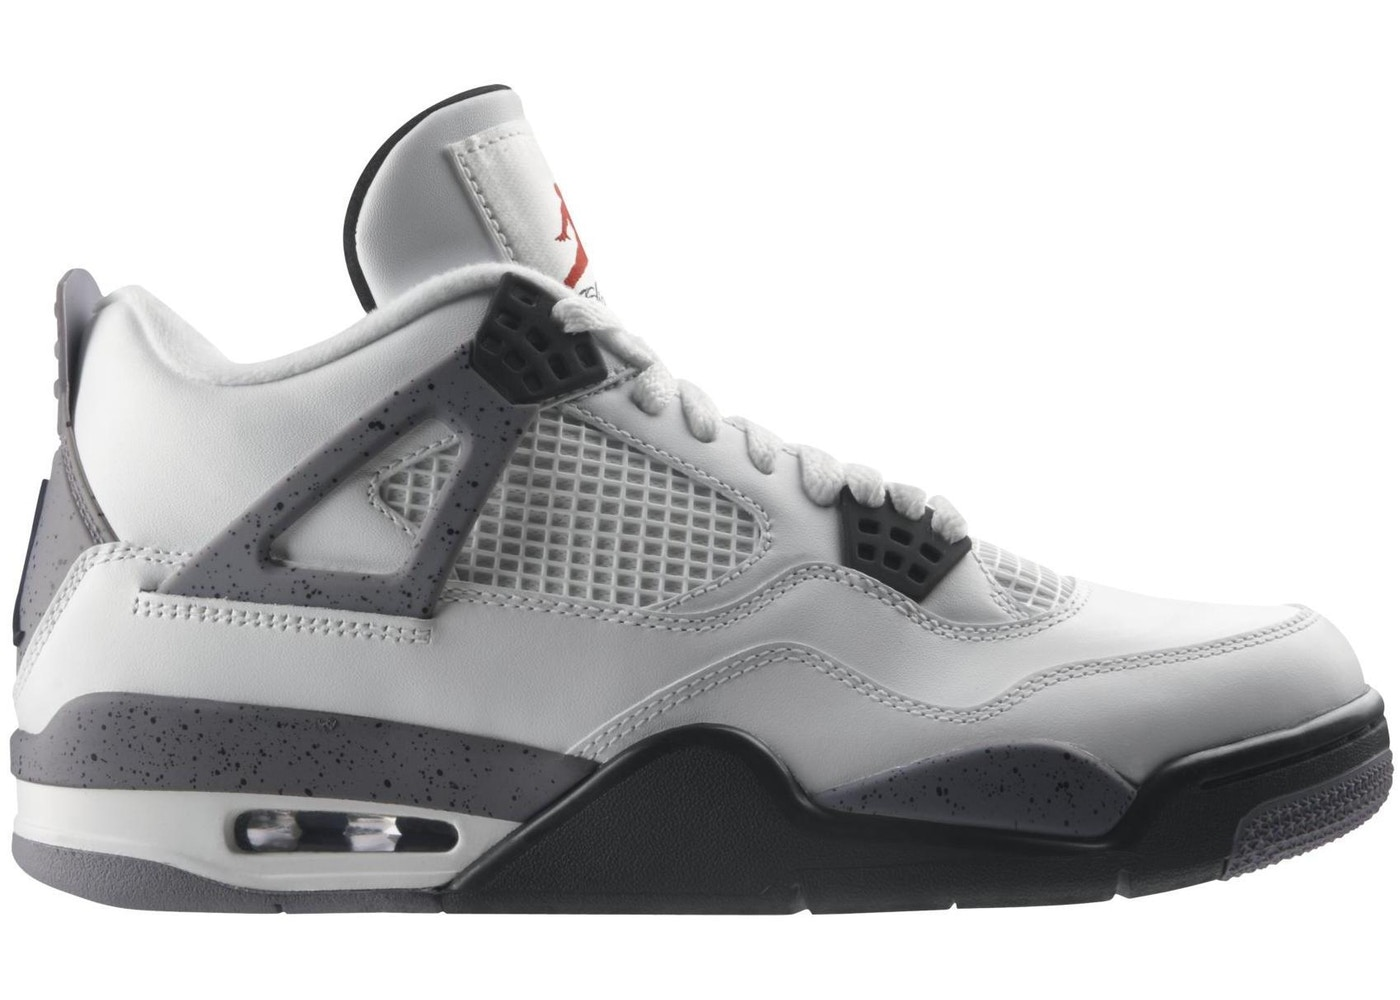 e8257b46128c1 Jordan 4 Retro White Cement (2012) - 308497-103